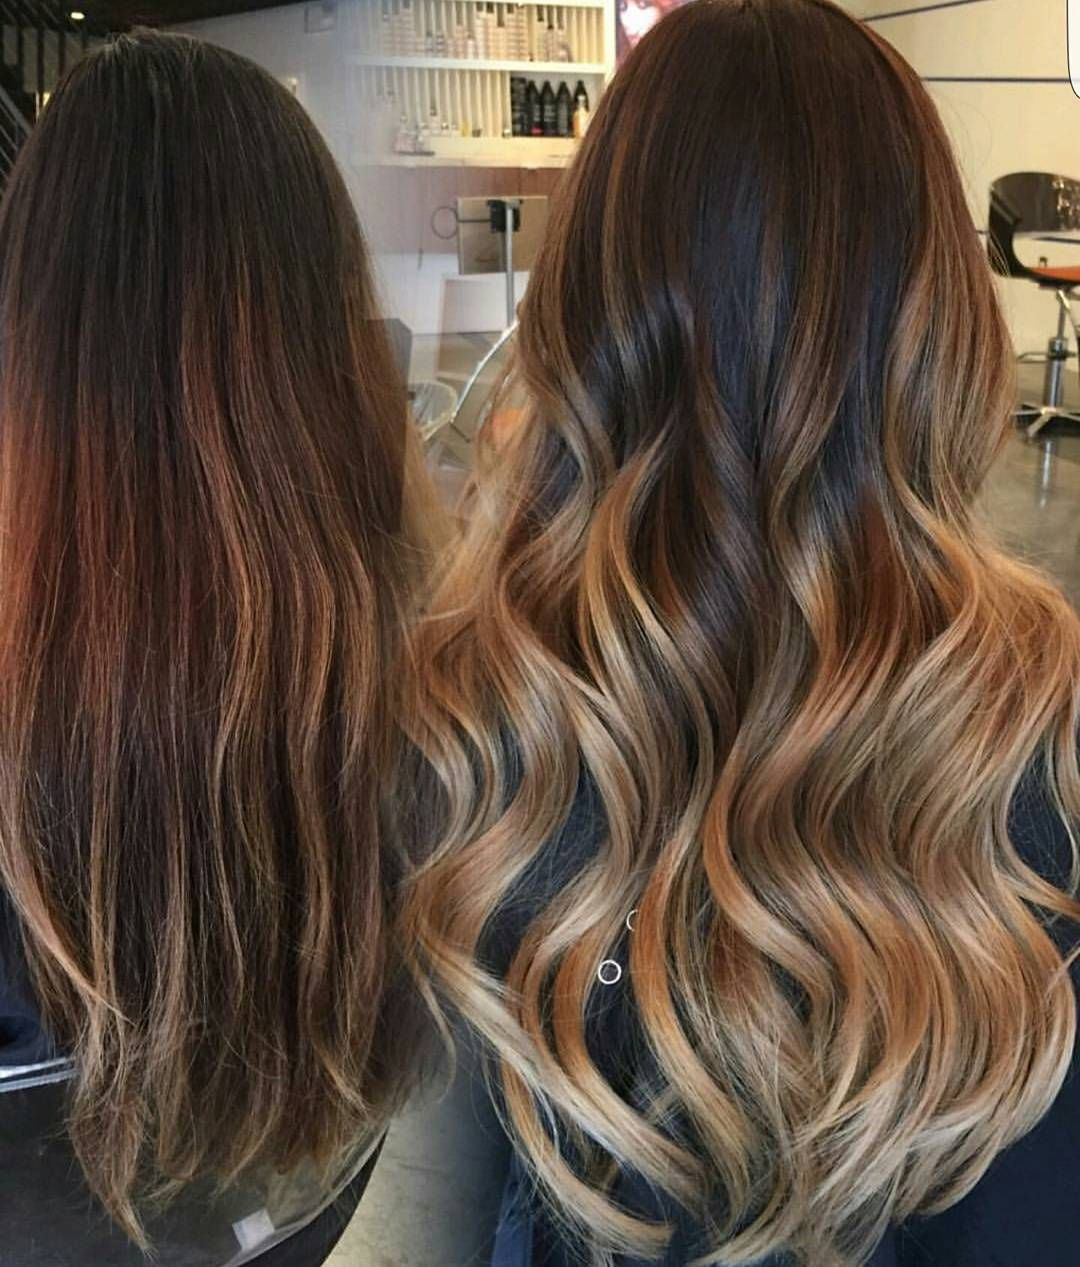 Caramel Butterscotch Balayage Transformationtuesday By